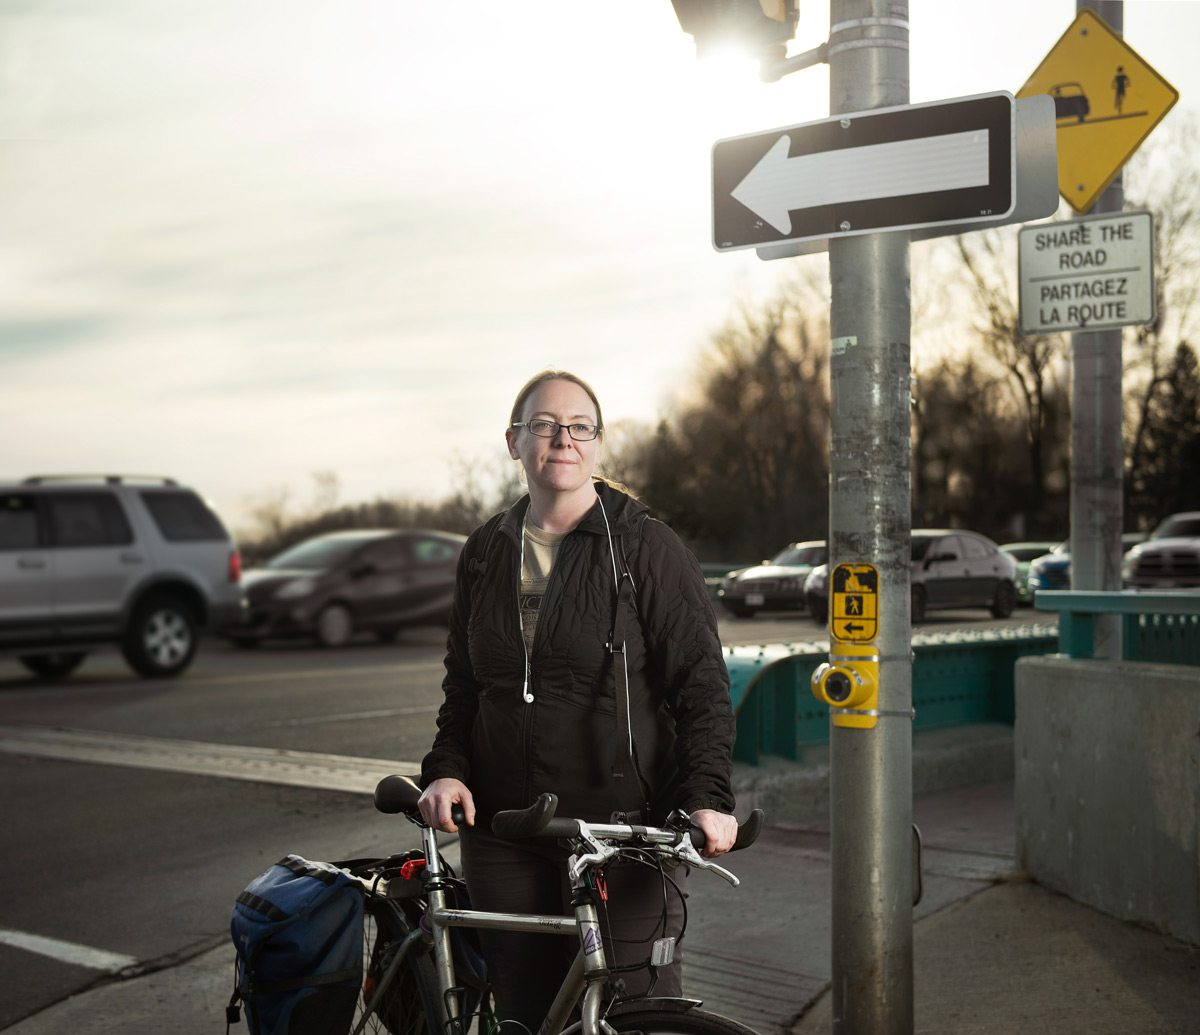 Kathryn Hunt commutes by bike from her home in Heron Gate to her job downtown, a trip that means battling cars for room on the road. Photo: Luther Caverly